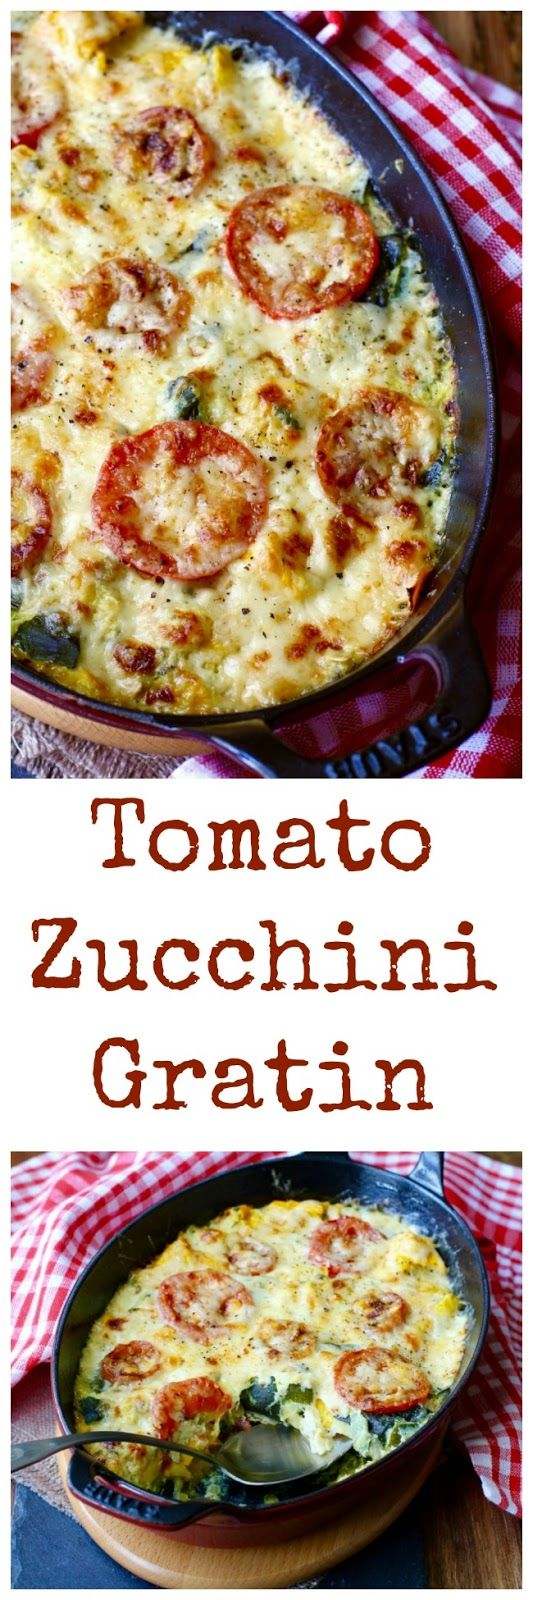 Zucchini Tomato Gratin This Zucchini Tomato Gratin is one of my favorite summer dishes. It is really easy to make, and is a great way to use up all of your summer squash bounty.